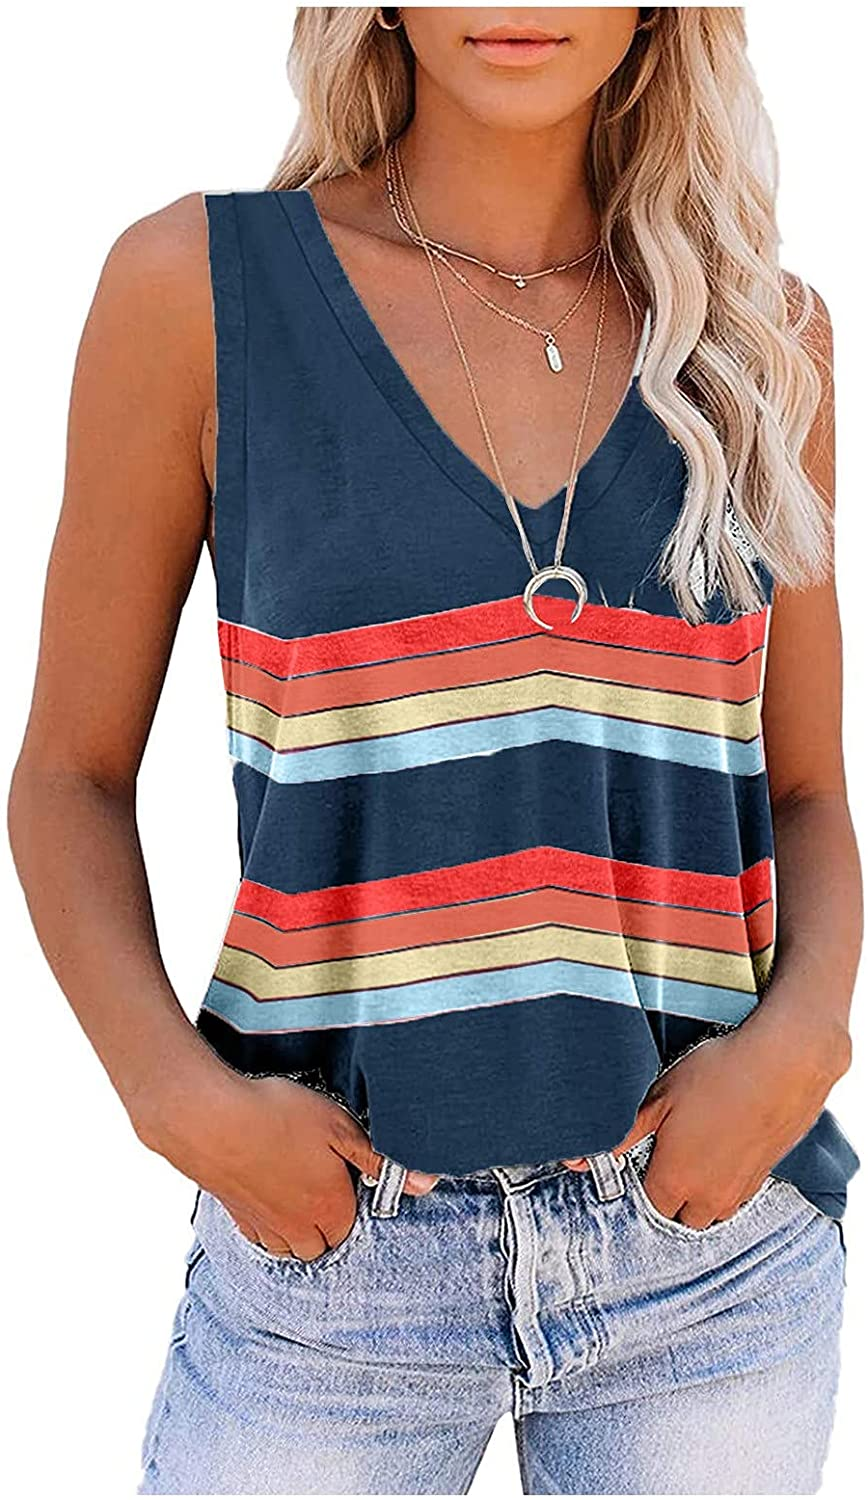 Summer Tops for Women, Womens Fashion Stripe V Neck Tank Top Sleeveless Vest Camis T Shirts Casual Comfy Tunic Blouses